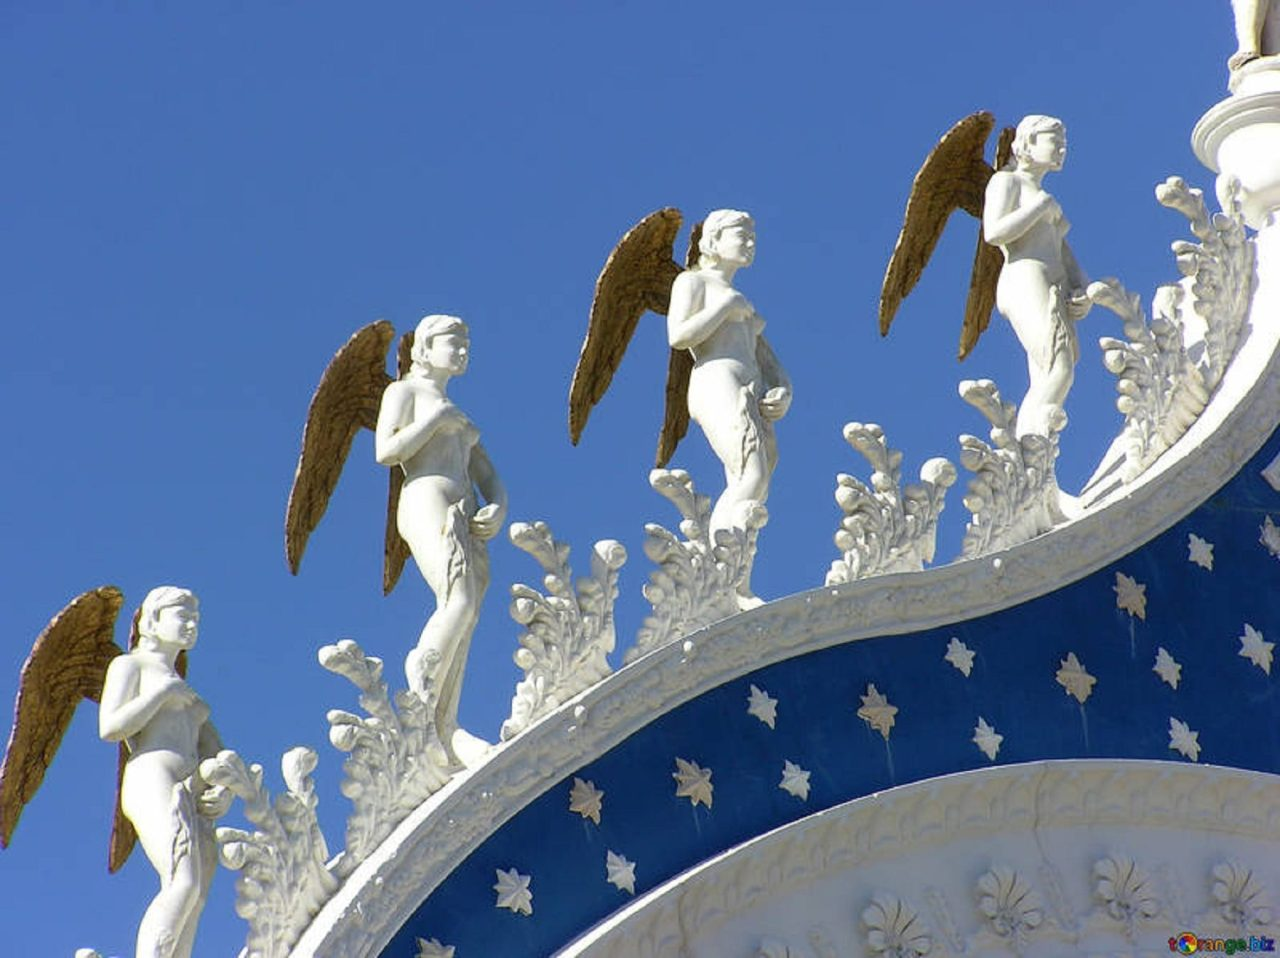 6 Facts About Angels You'll Wish You Knew About Sooner